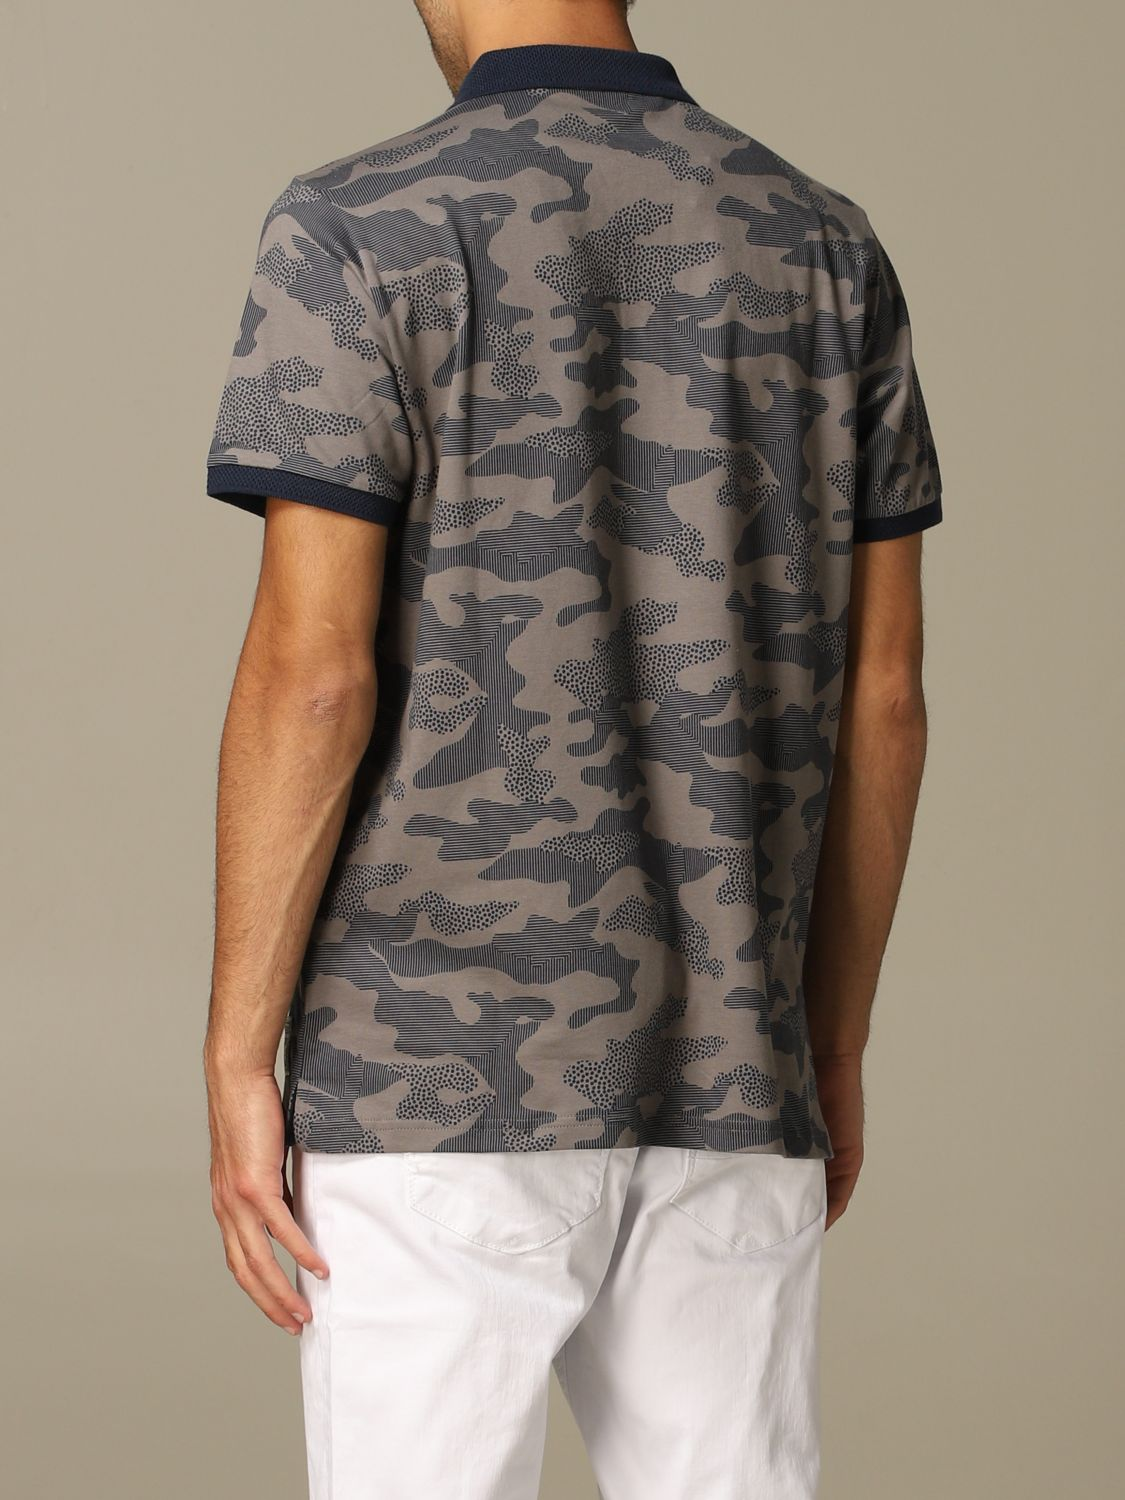 Sweater Alessandro Dell'acqua: Alessandro Dell'acqua polo shirt in camouflage patterned cotton grey 2